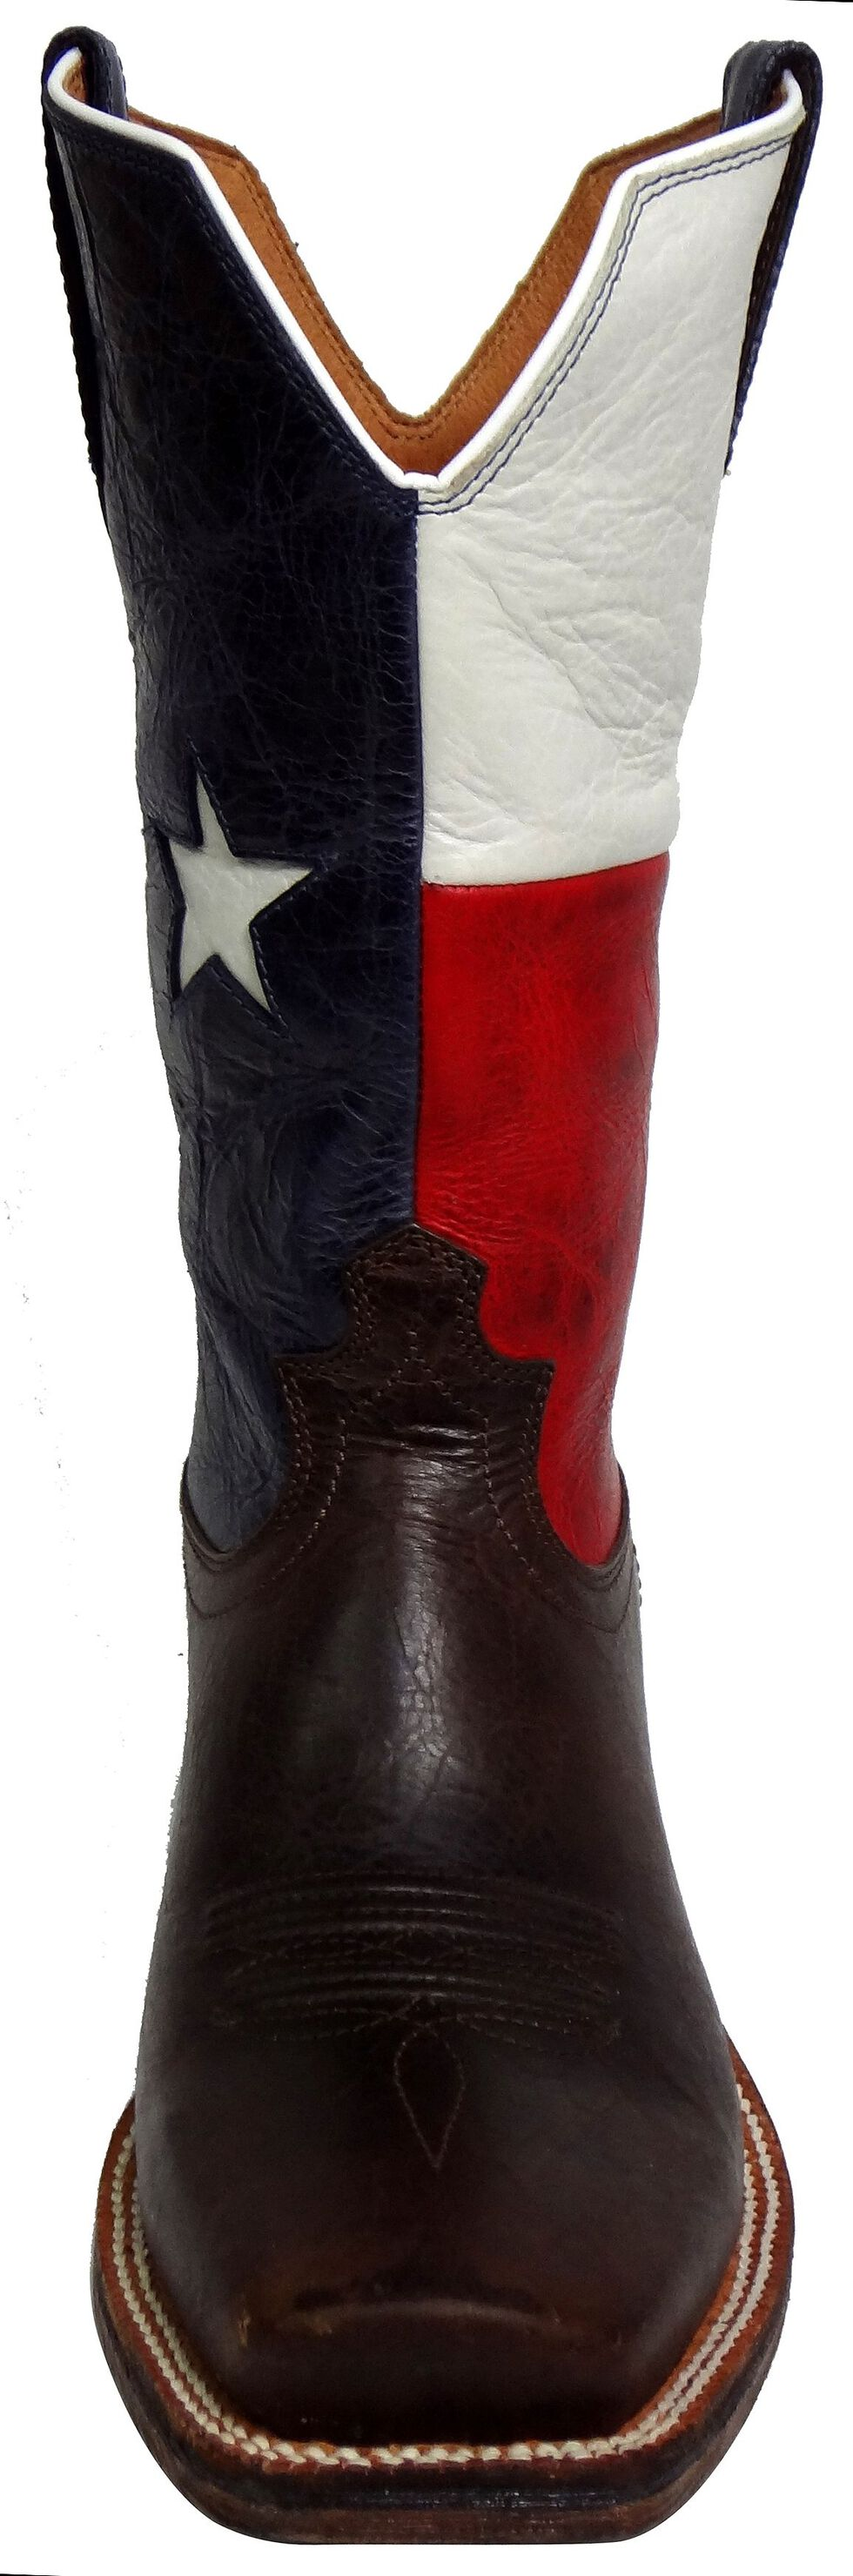 Twisted X Red River Texas Flag Cowboy Boots - Square Toe, Chocolate, hi-res